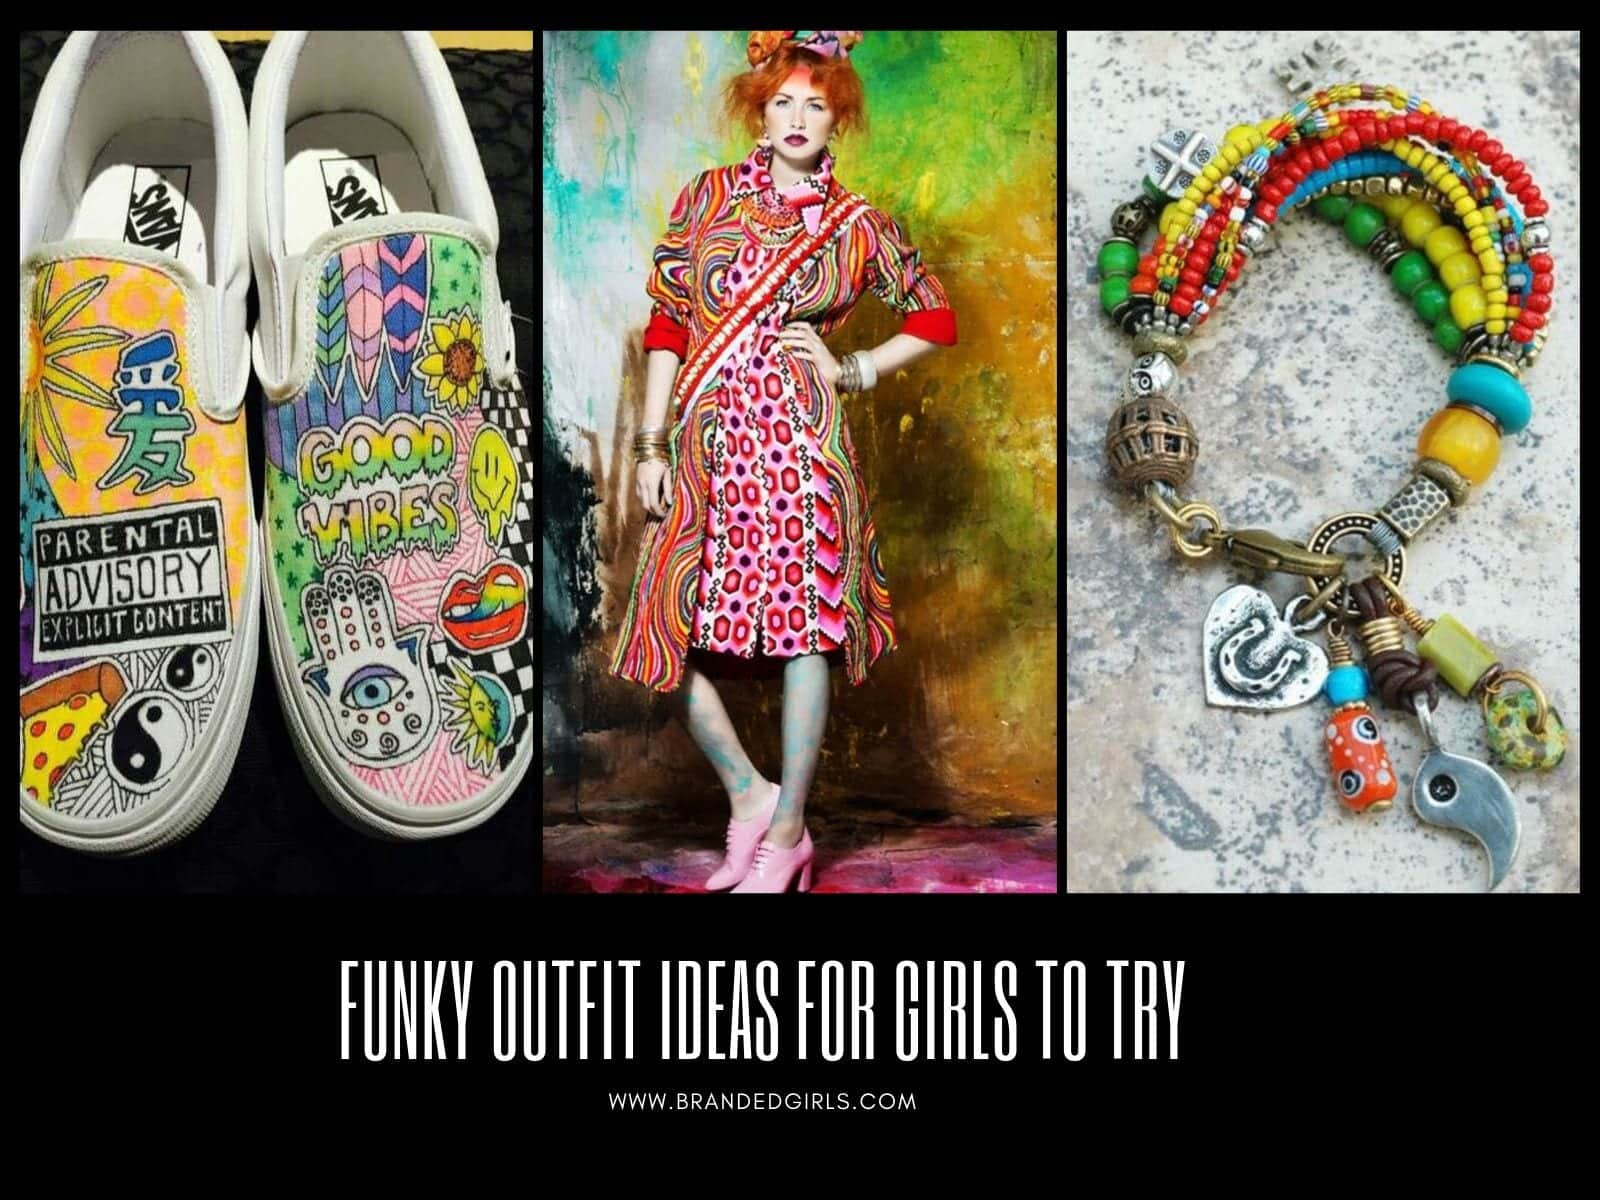 Funky-Outfits-for-Girls-to-Wear Funky Festival Outfits - 30 Funky Outfits for Girls to Wear